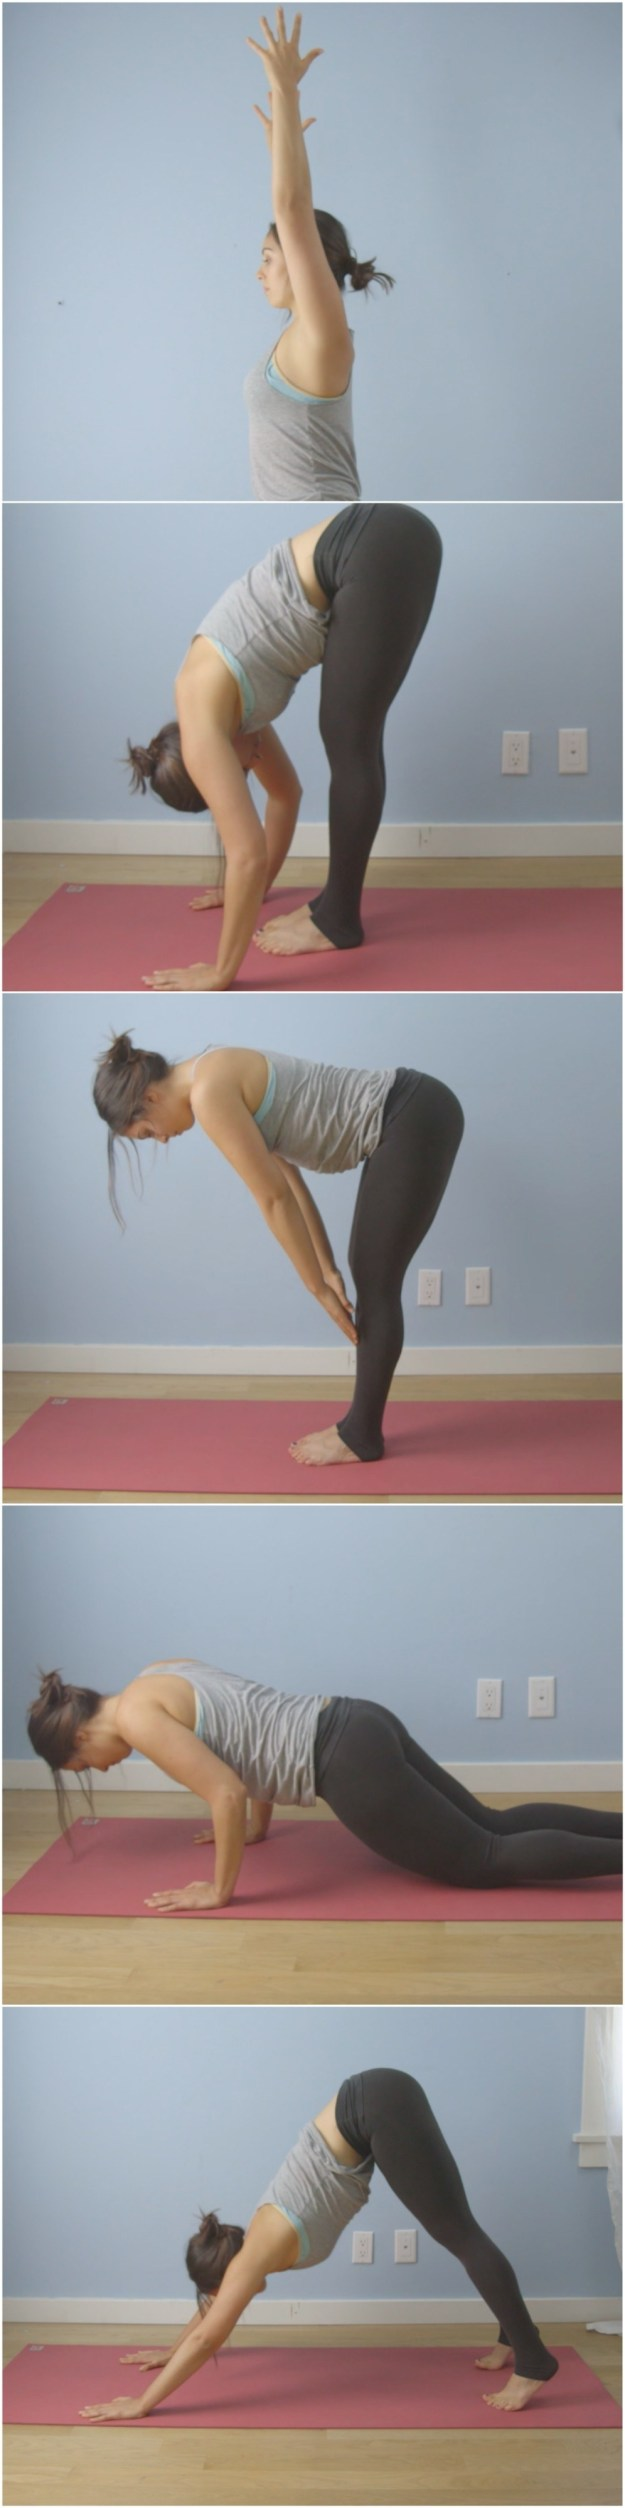 A Beginner Yoga Routine To Build Strength And Flexibility